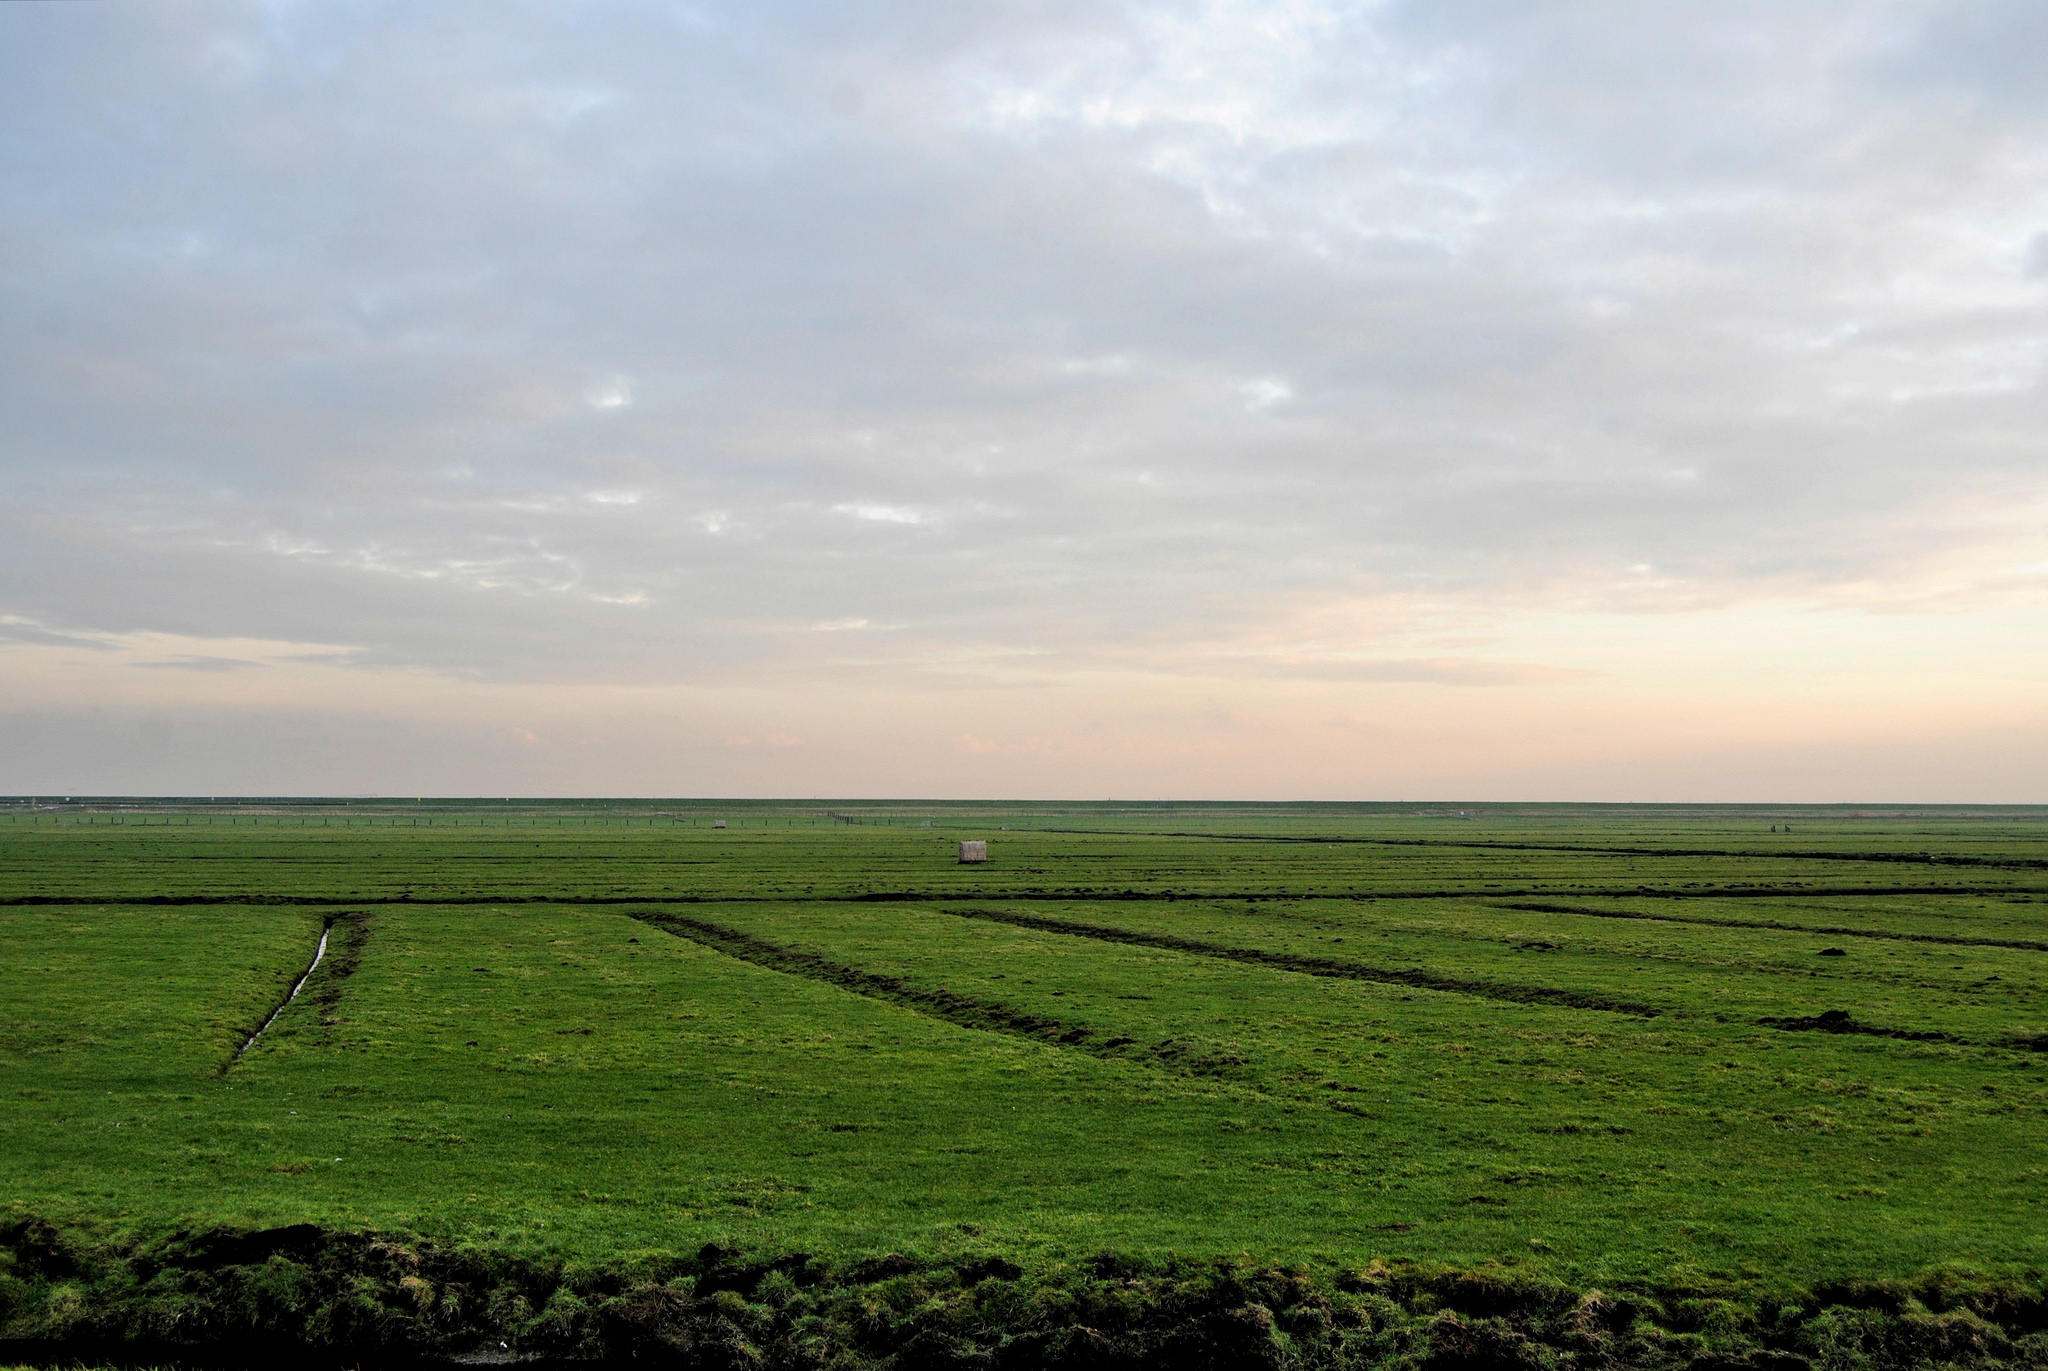 Waterland in Holland, a flat, empty and grassy landscape.